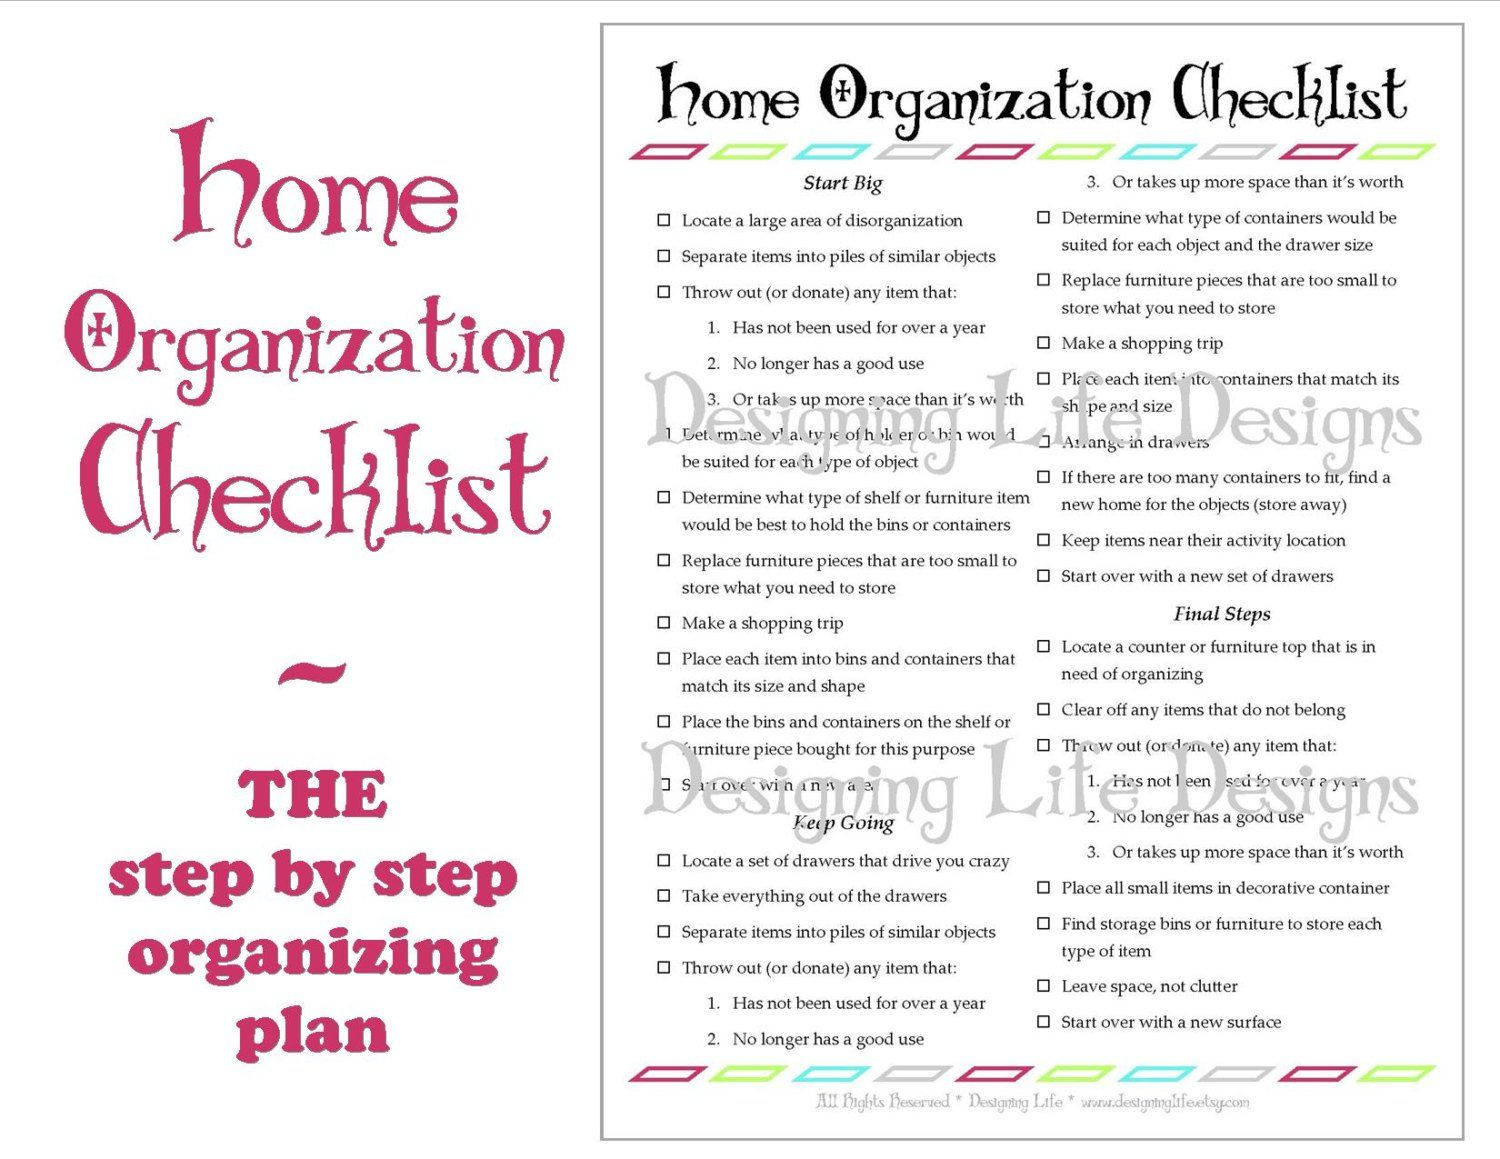 Home Organization Checklist PDF Printable Basic